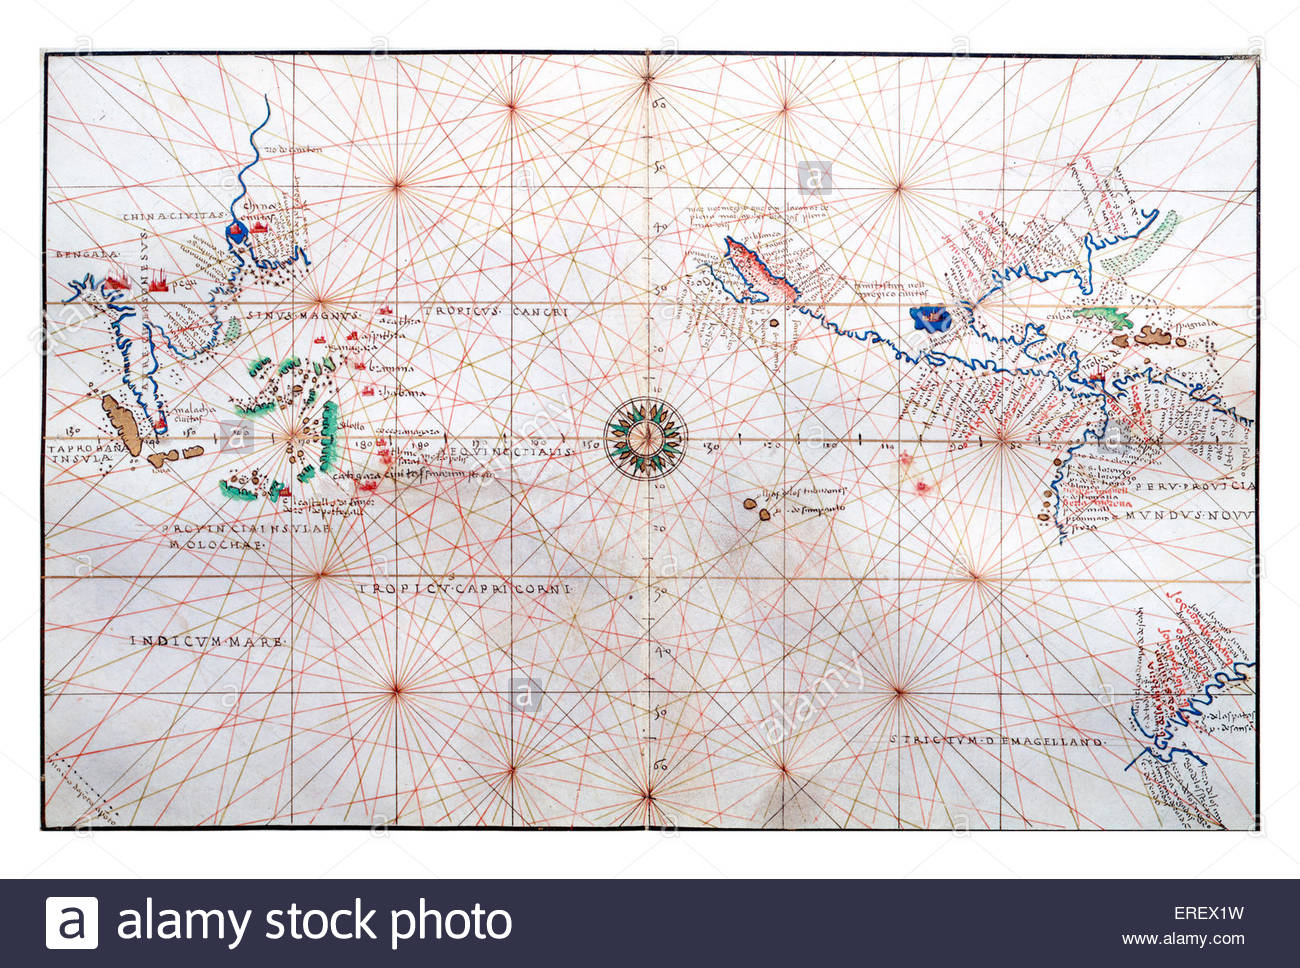 16th century navigation chart by Battista Agnese. Shows China, Ceylon (modern-day Sri Lanka) and the Philipines. - Stock Image